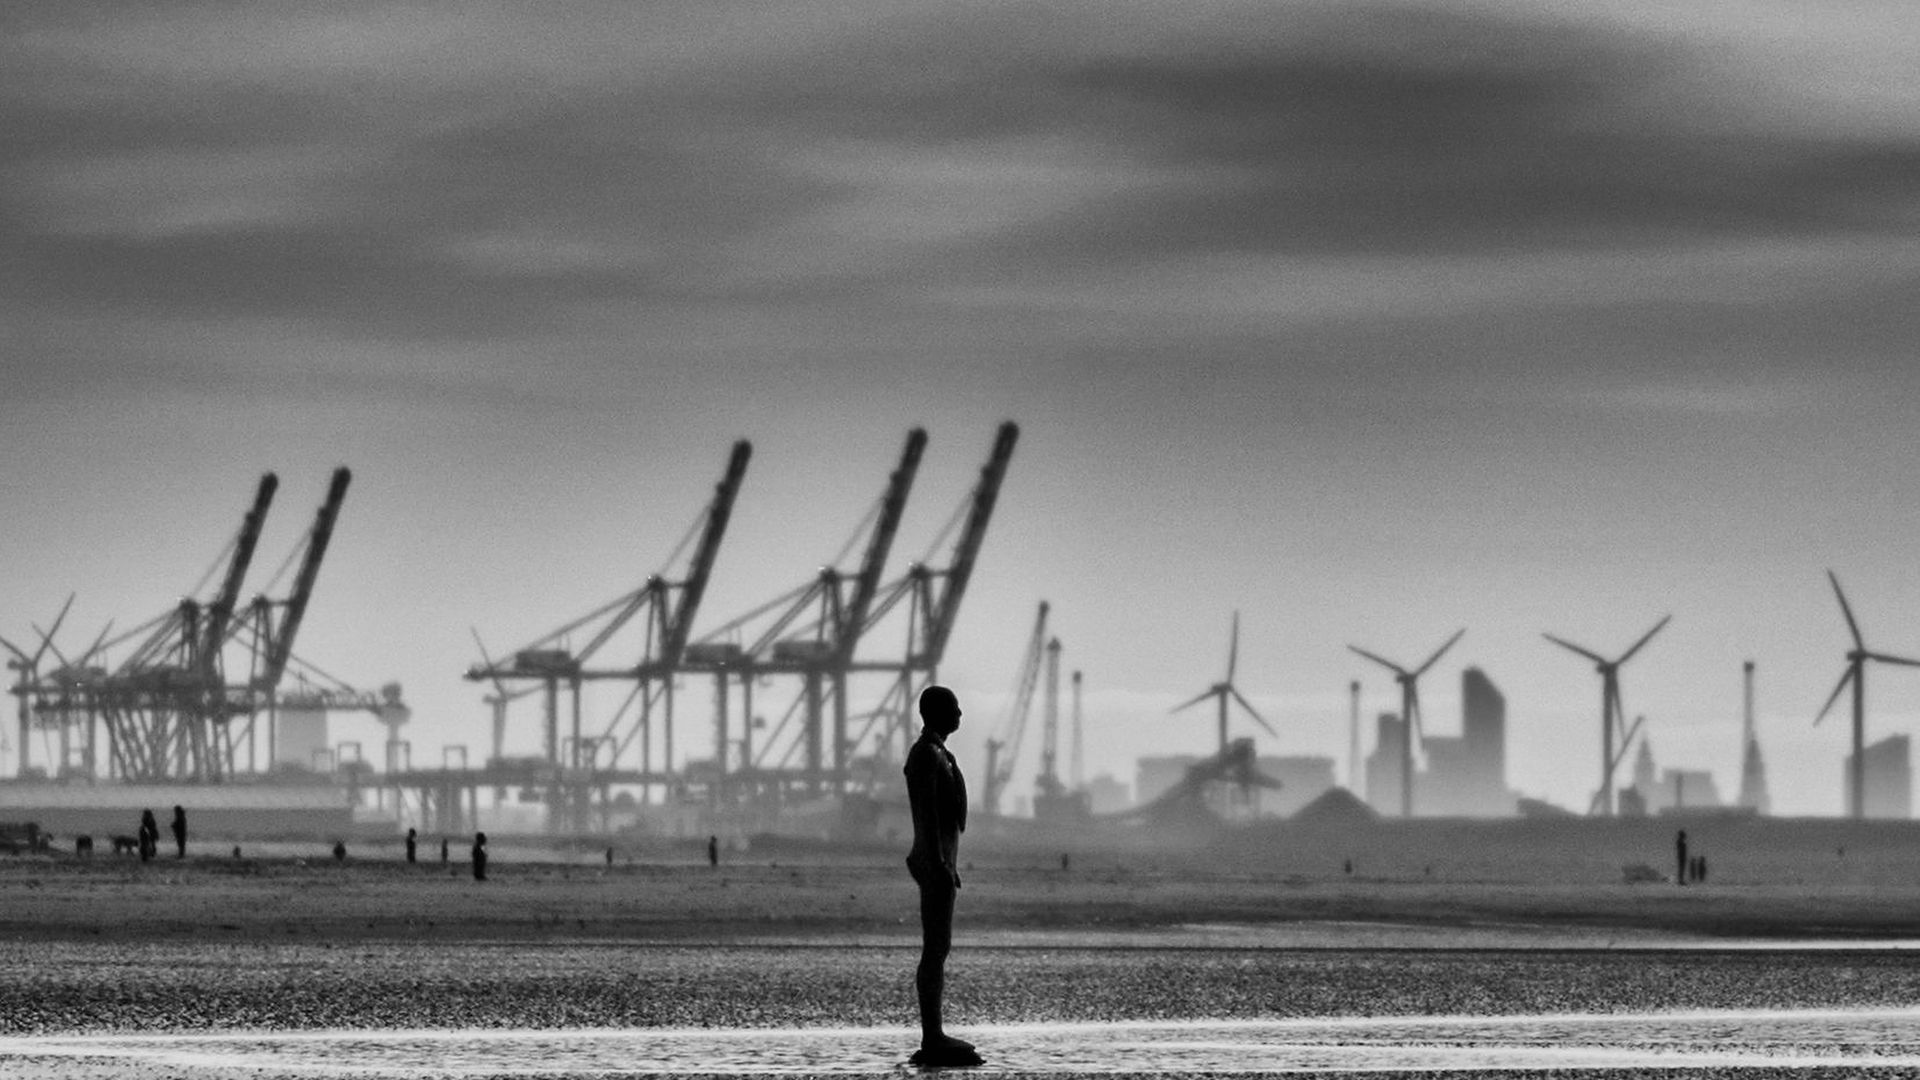 A statue of Antony Gormley's art installation Another Place at Crosby beach - Credit: Getty Images